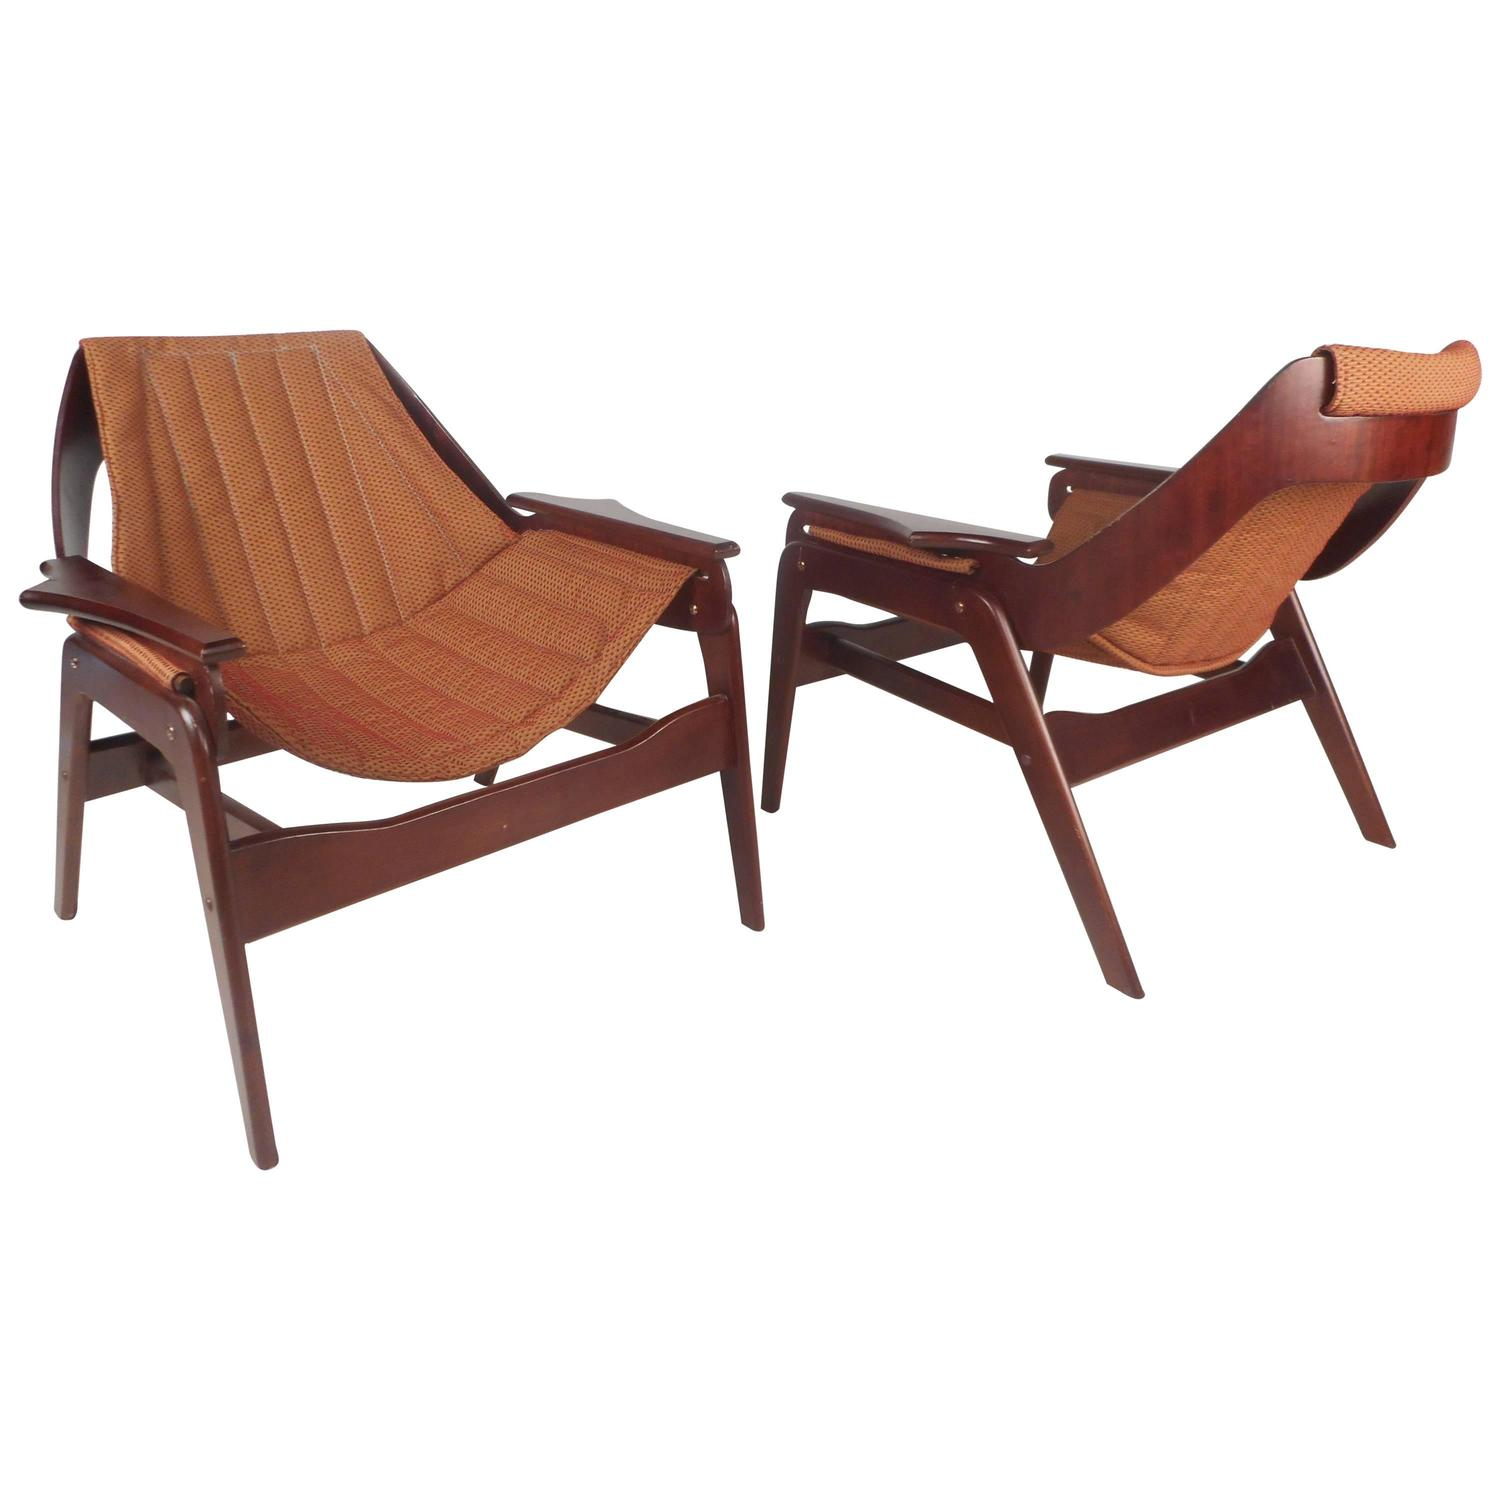 Mid Century Modern Sling Lounge Chairs by Jerry Johnson at 1stdibs